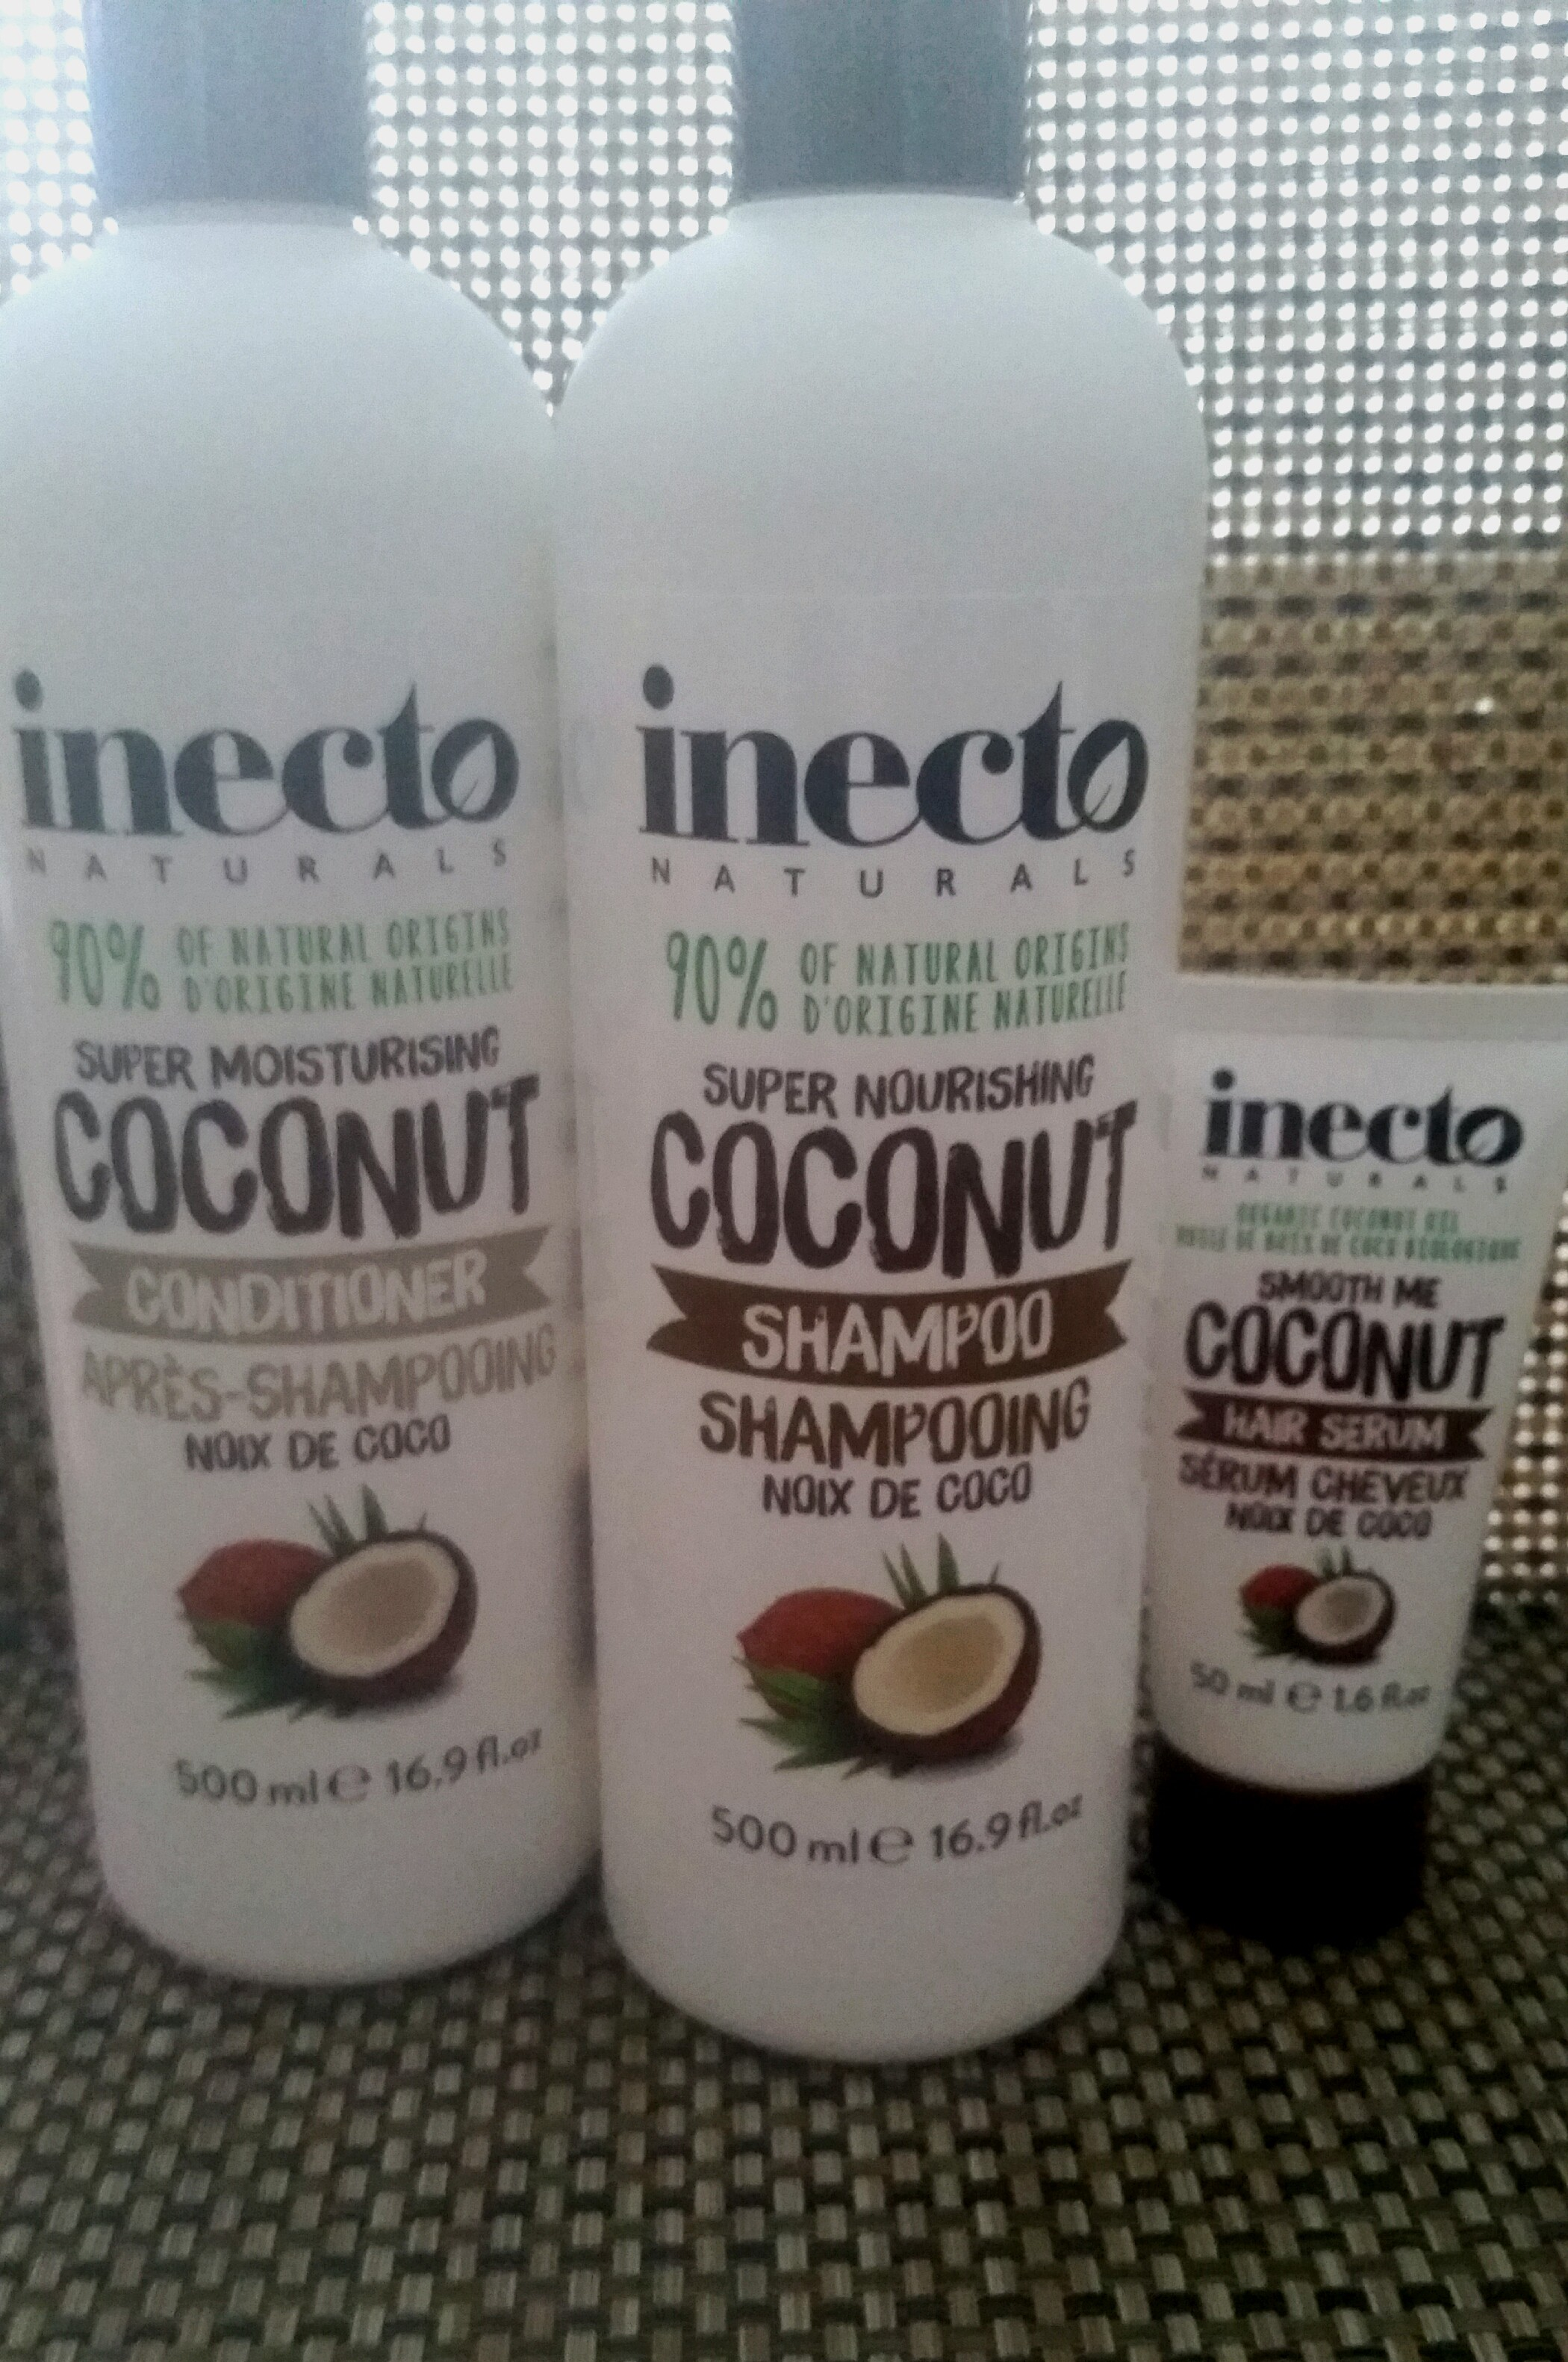 Inecto Super Nourishing Coconut haarproducten